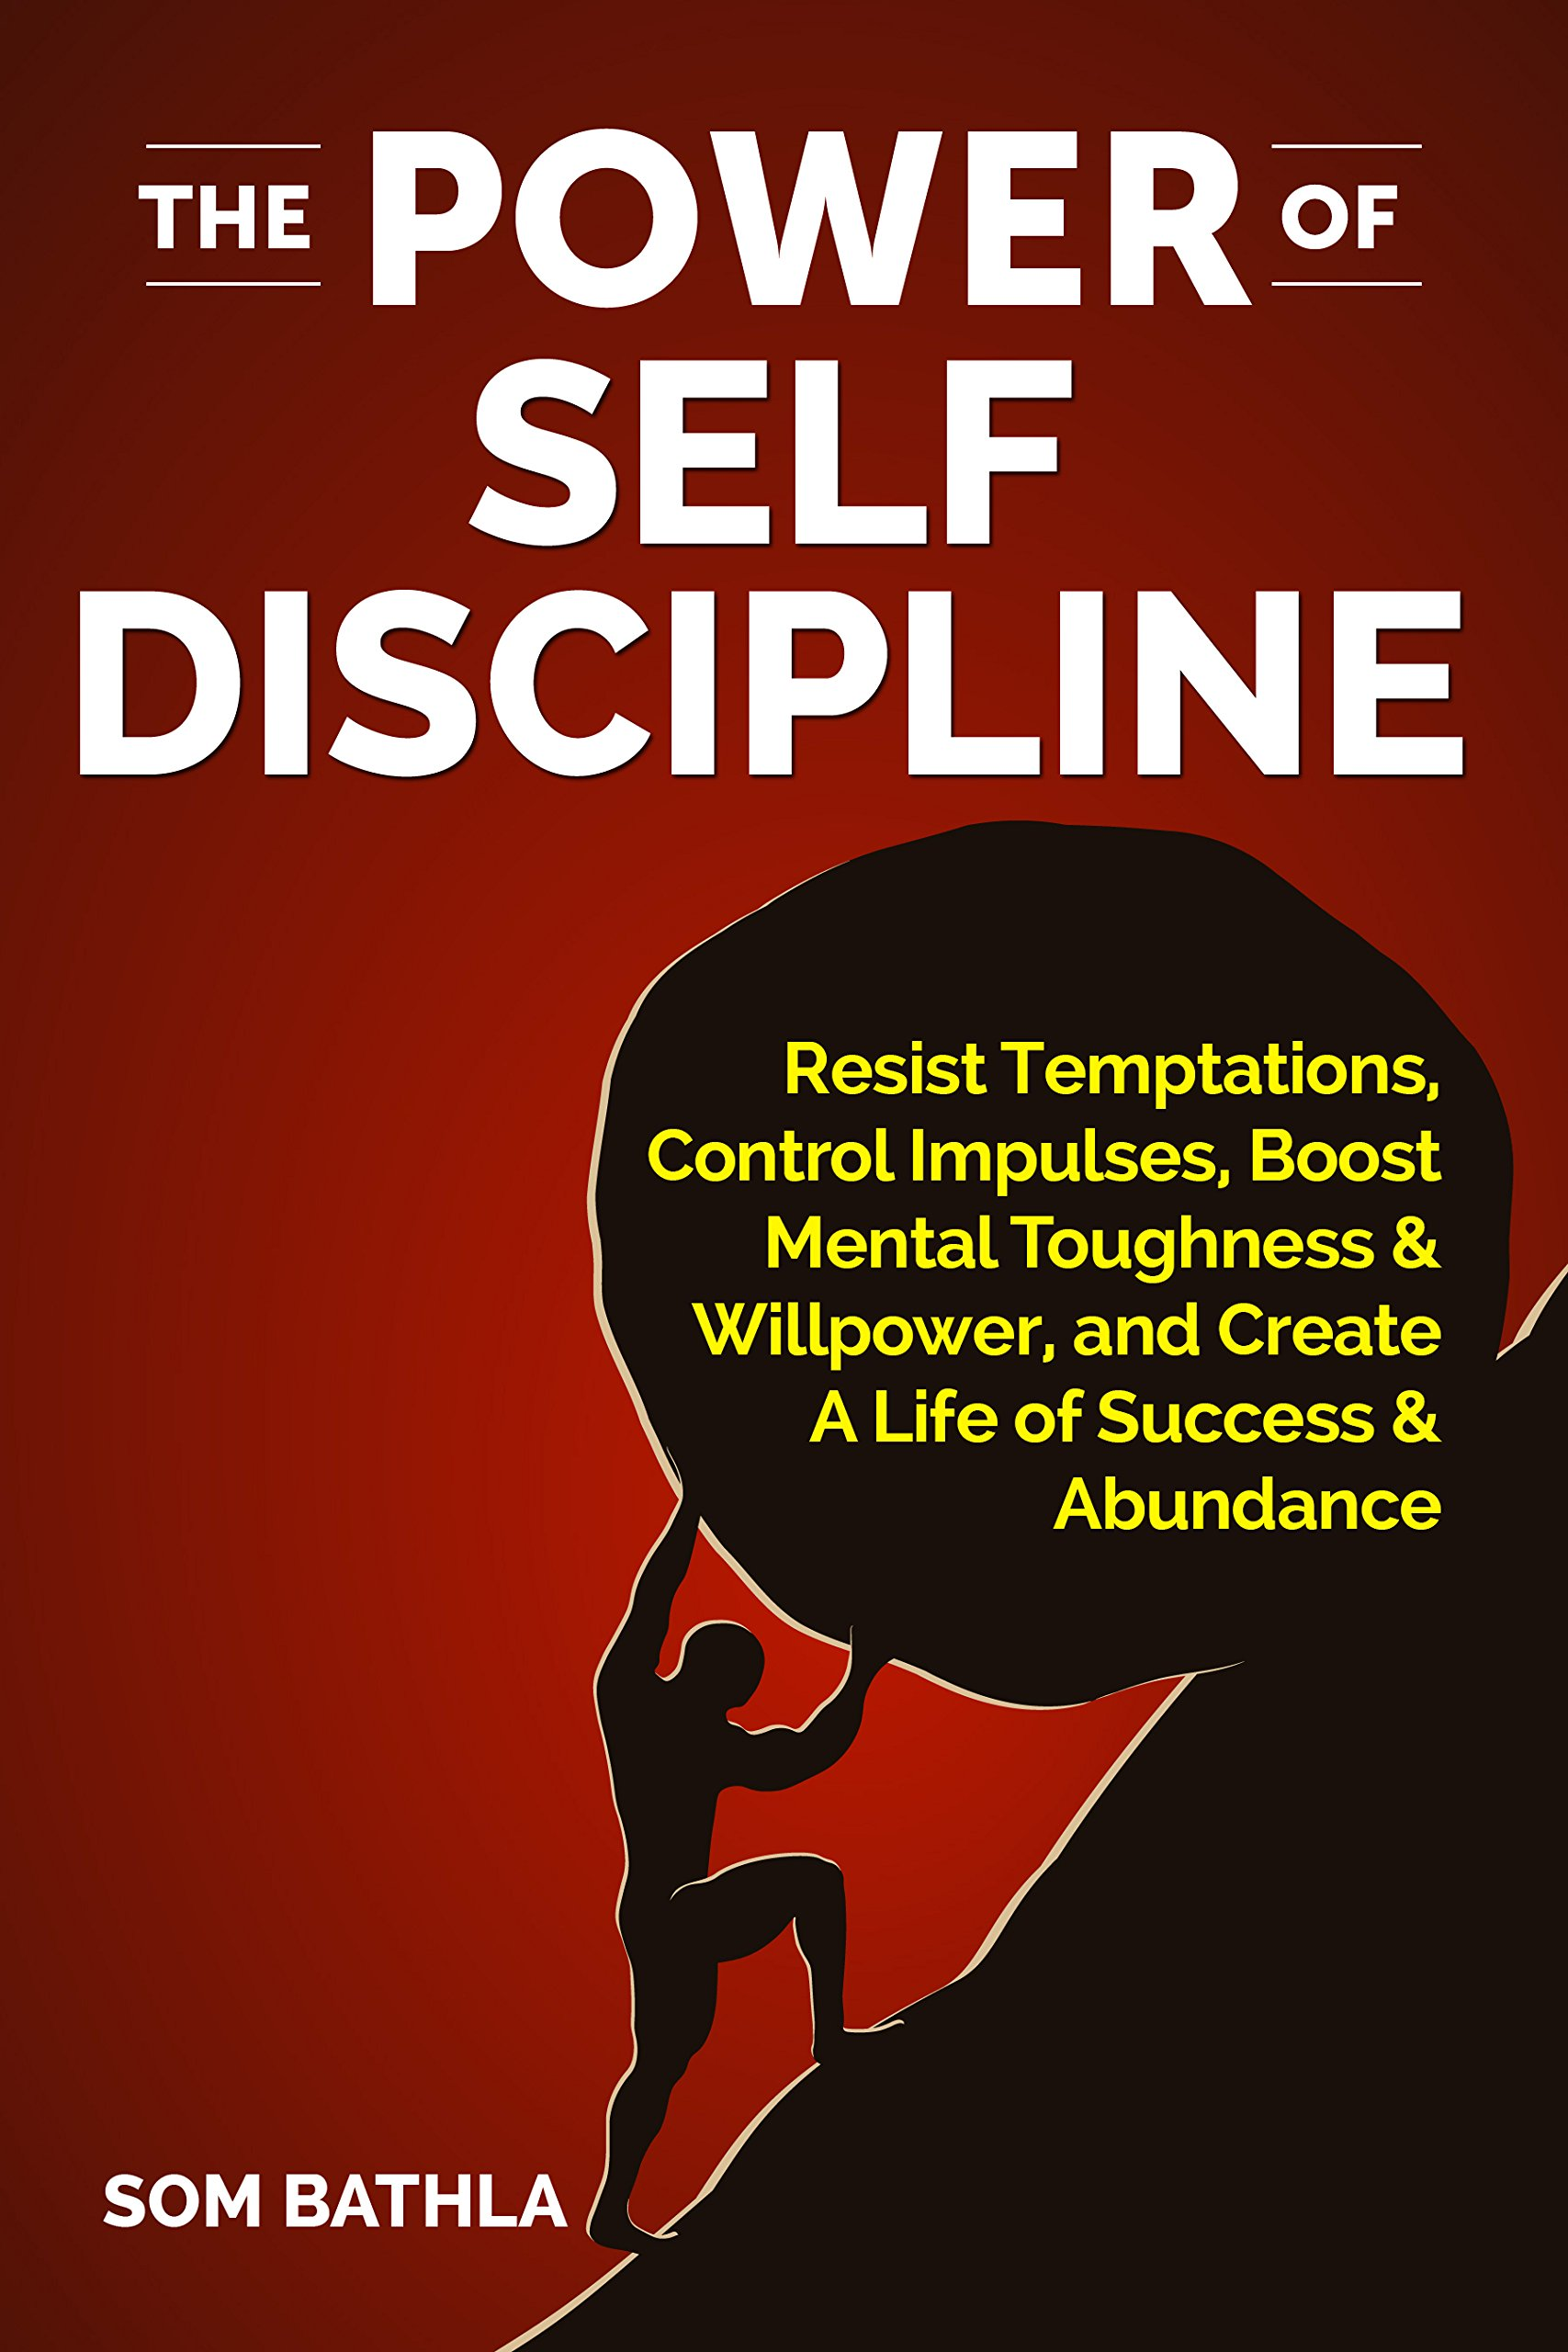 The Power of Self Discipline: Resist Temptations, Control Impulses, Boost Mental Toughness & Willpower, and Create A Life of Success & Abundance